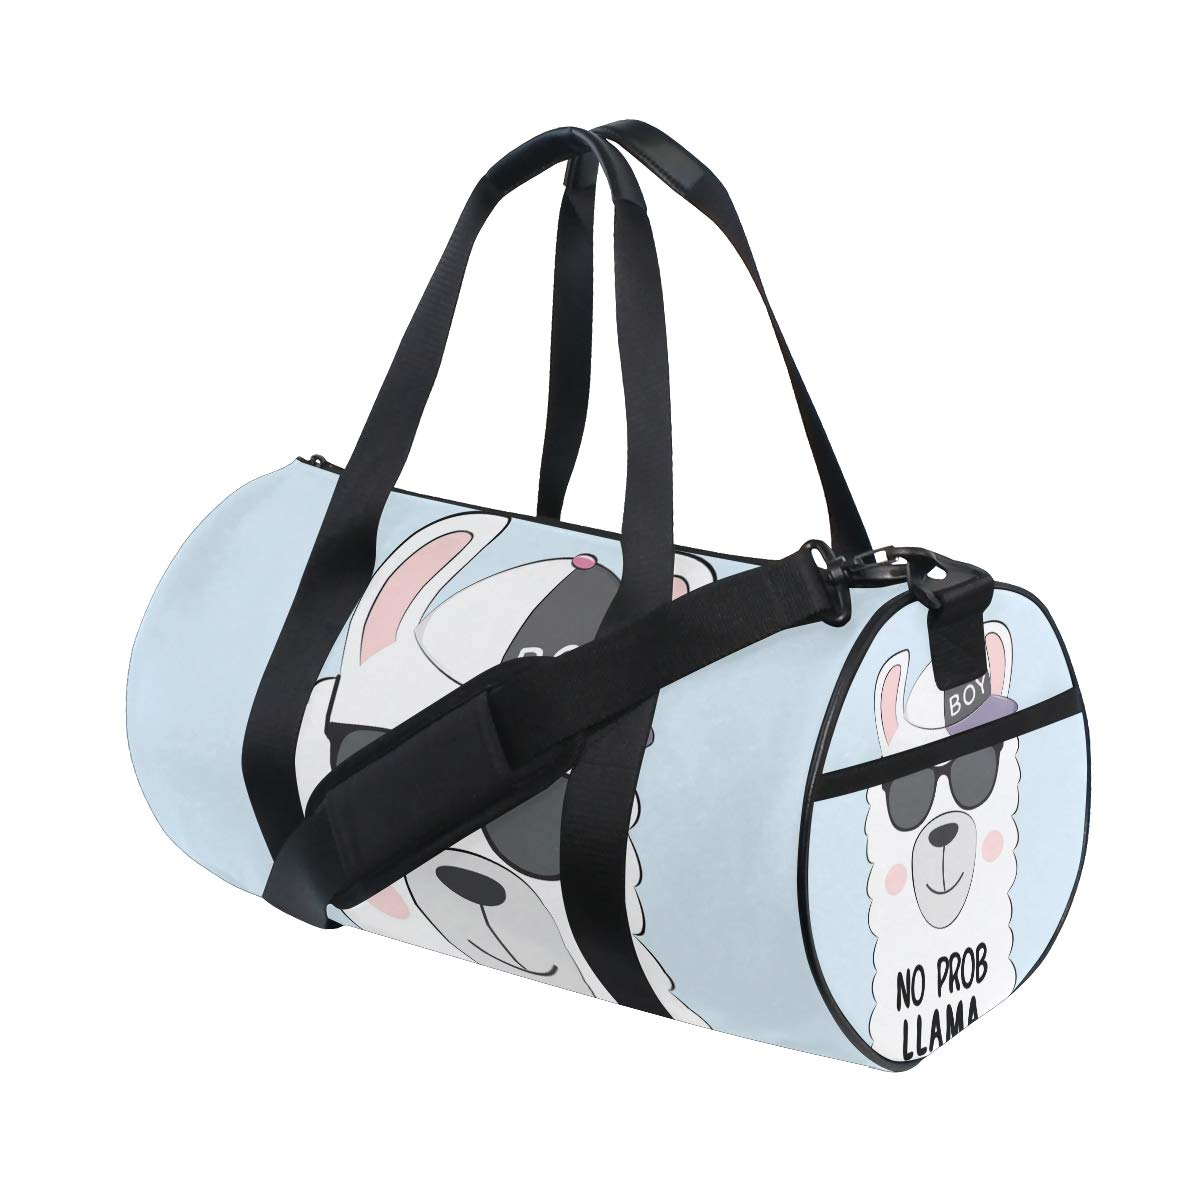 Llama Unisex's Duffel Bag Travel Tote Luggage Bag Gym Sports Luggage Bag